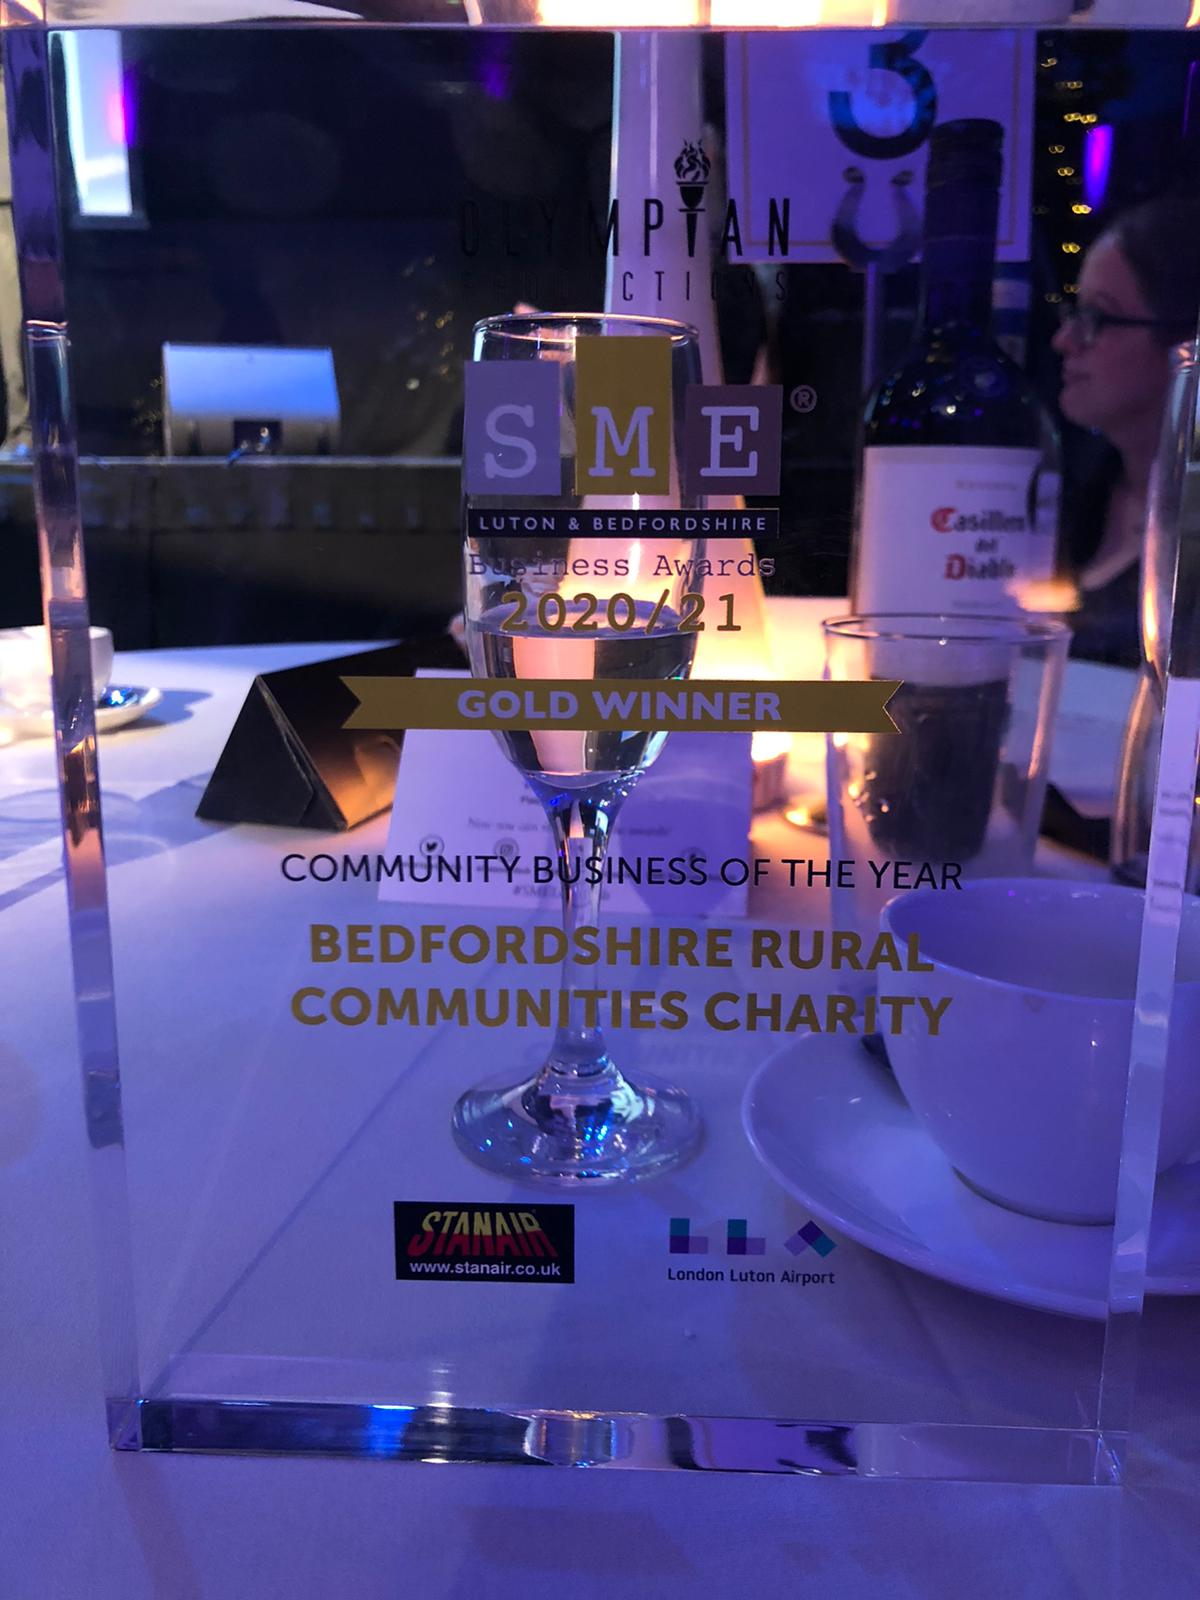 the Community Business of the Year Award